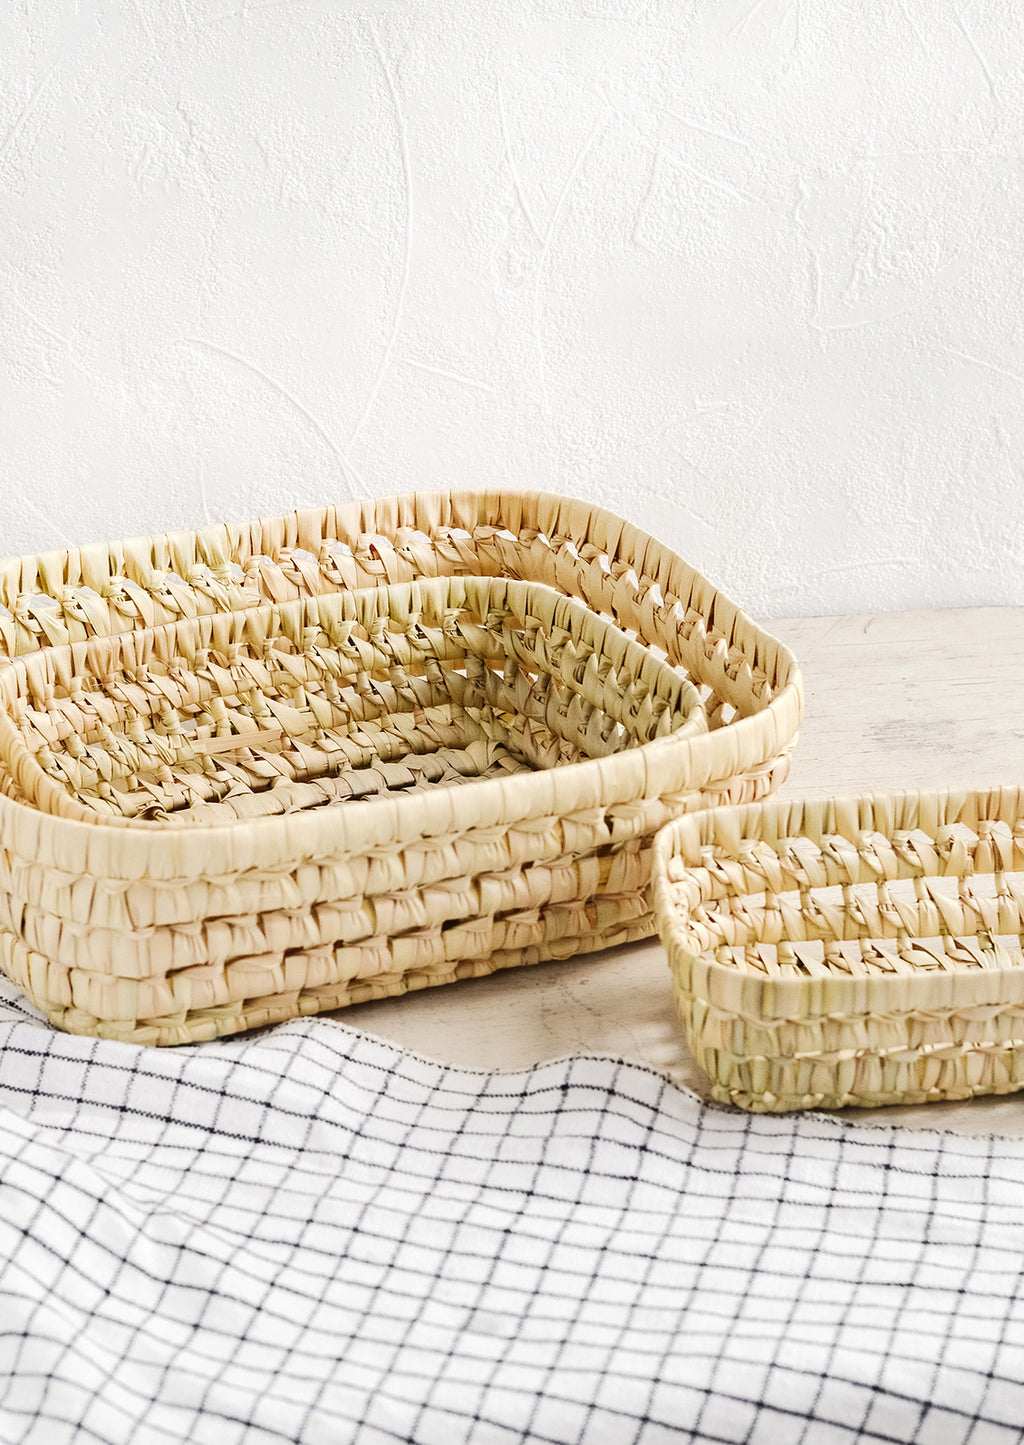 3: A collection of shallow nesting baskets made from palm leaf.